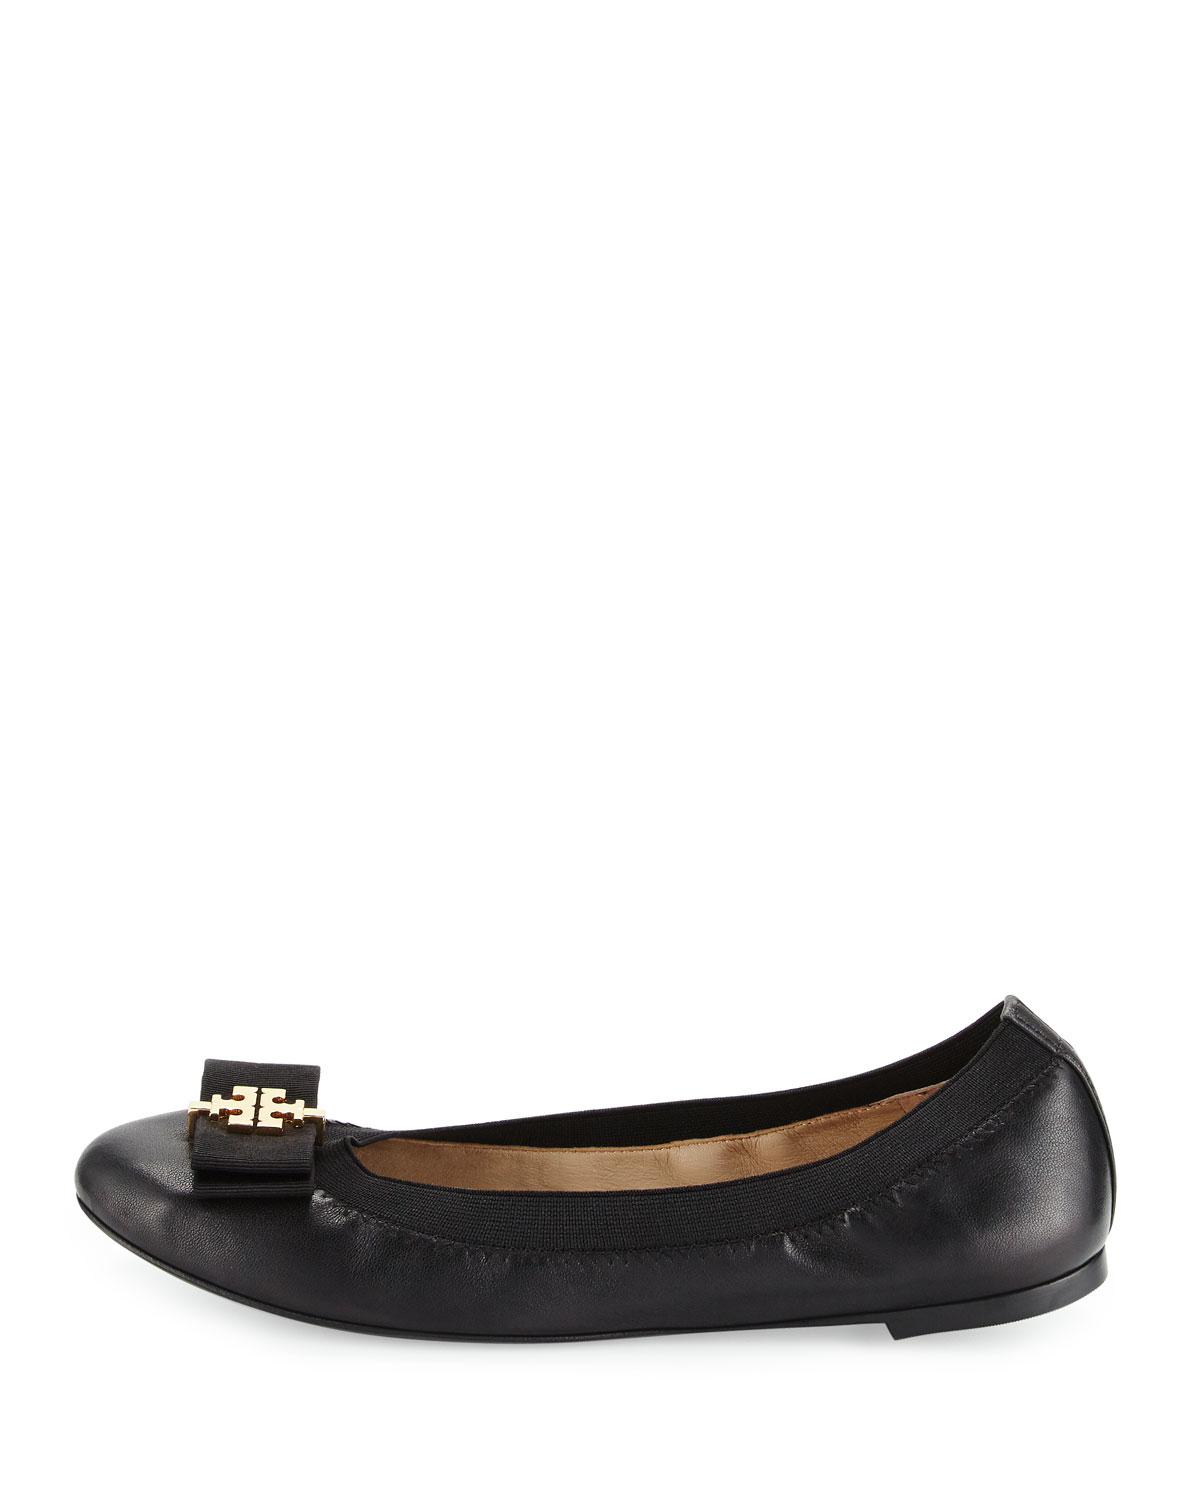 cde816a3558e92 Lyst - Tory Burch Sedgewick Leather Bow Flat in Black